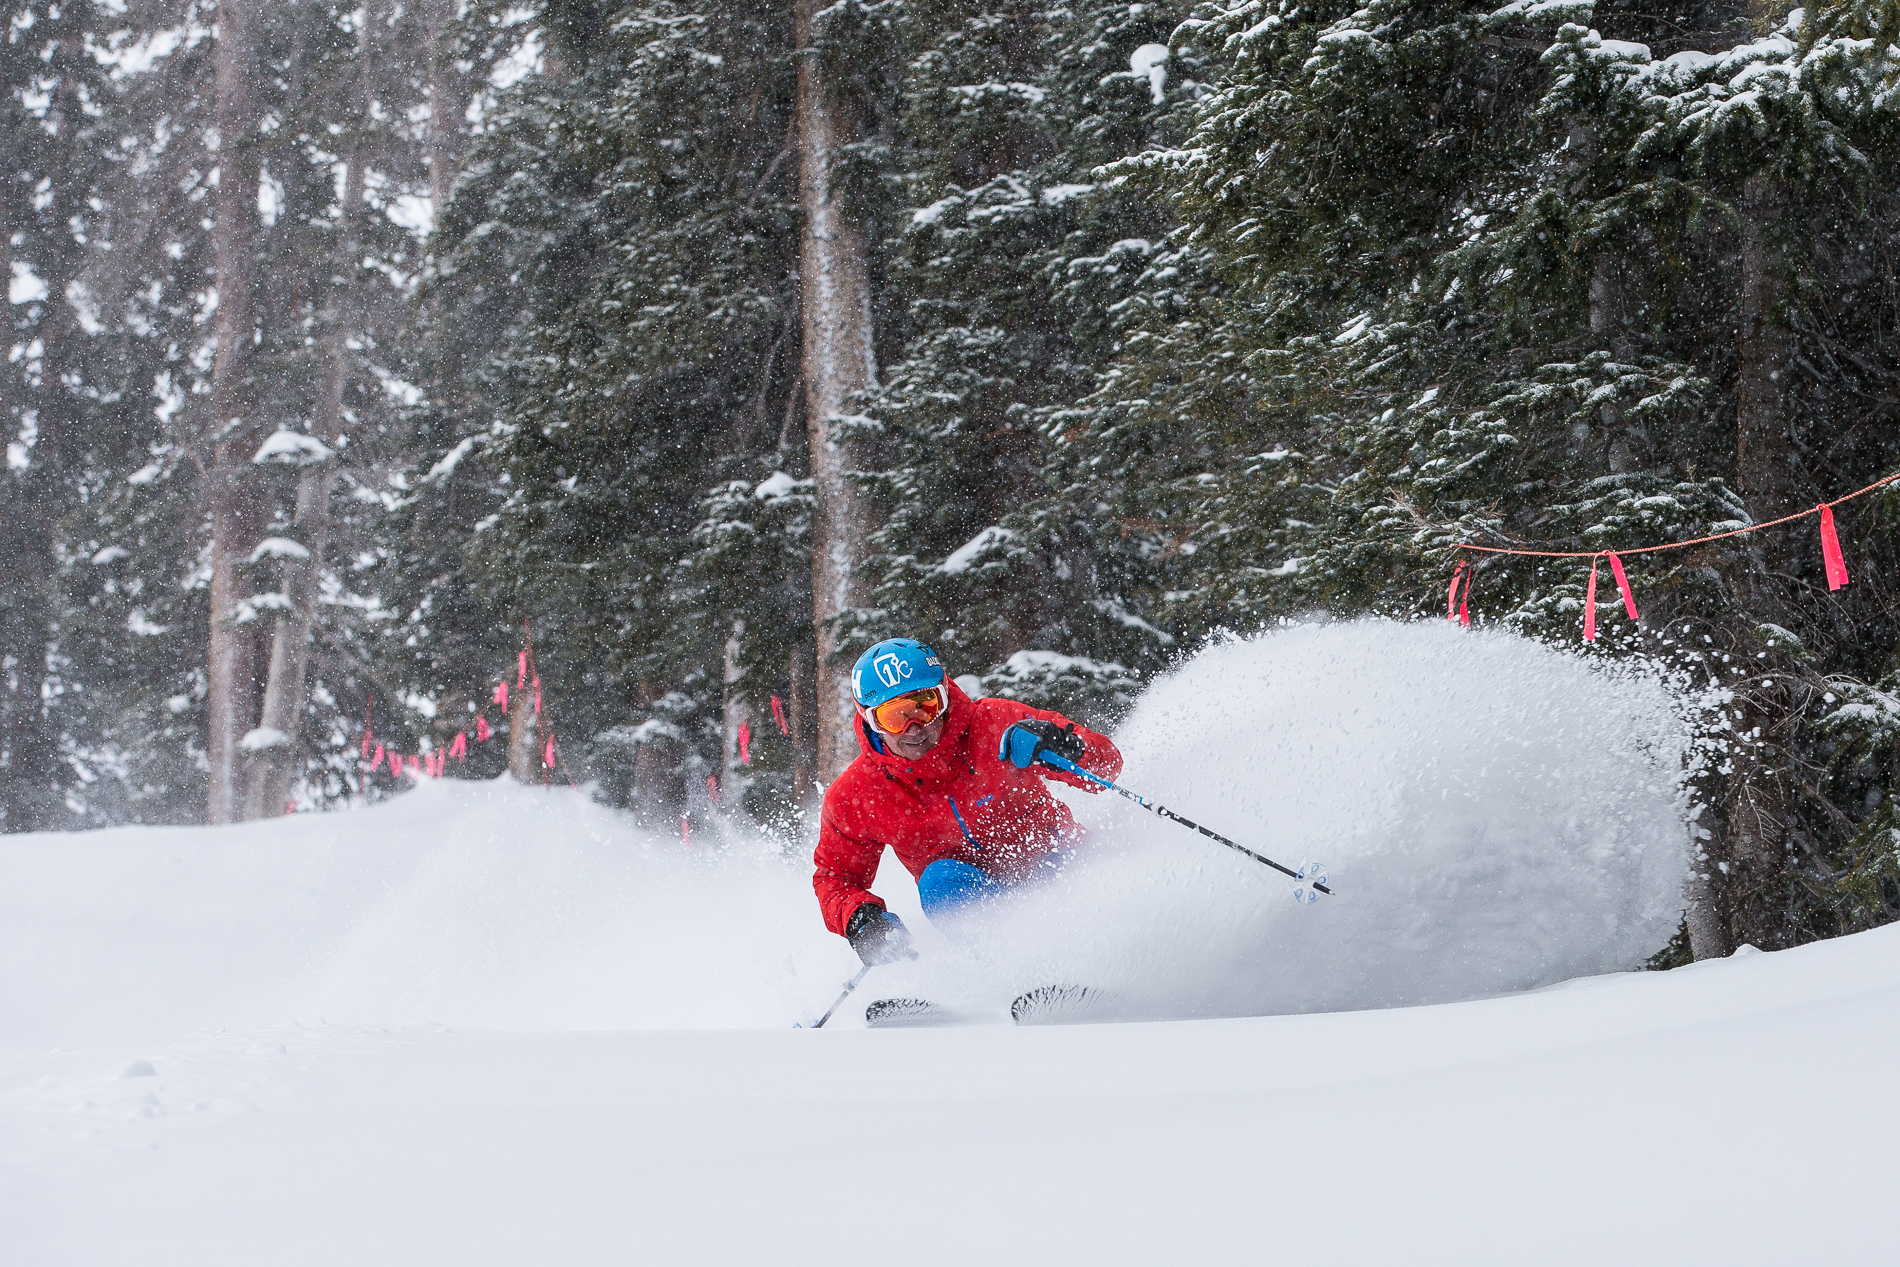 Winter Storms Blanket Colorado Prompting Many Resorts To Open Early